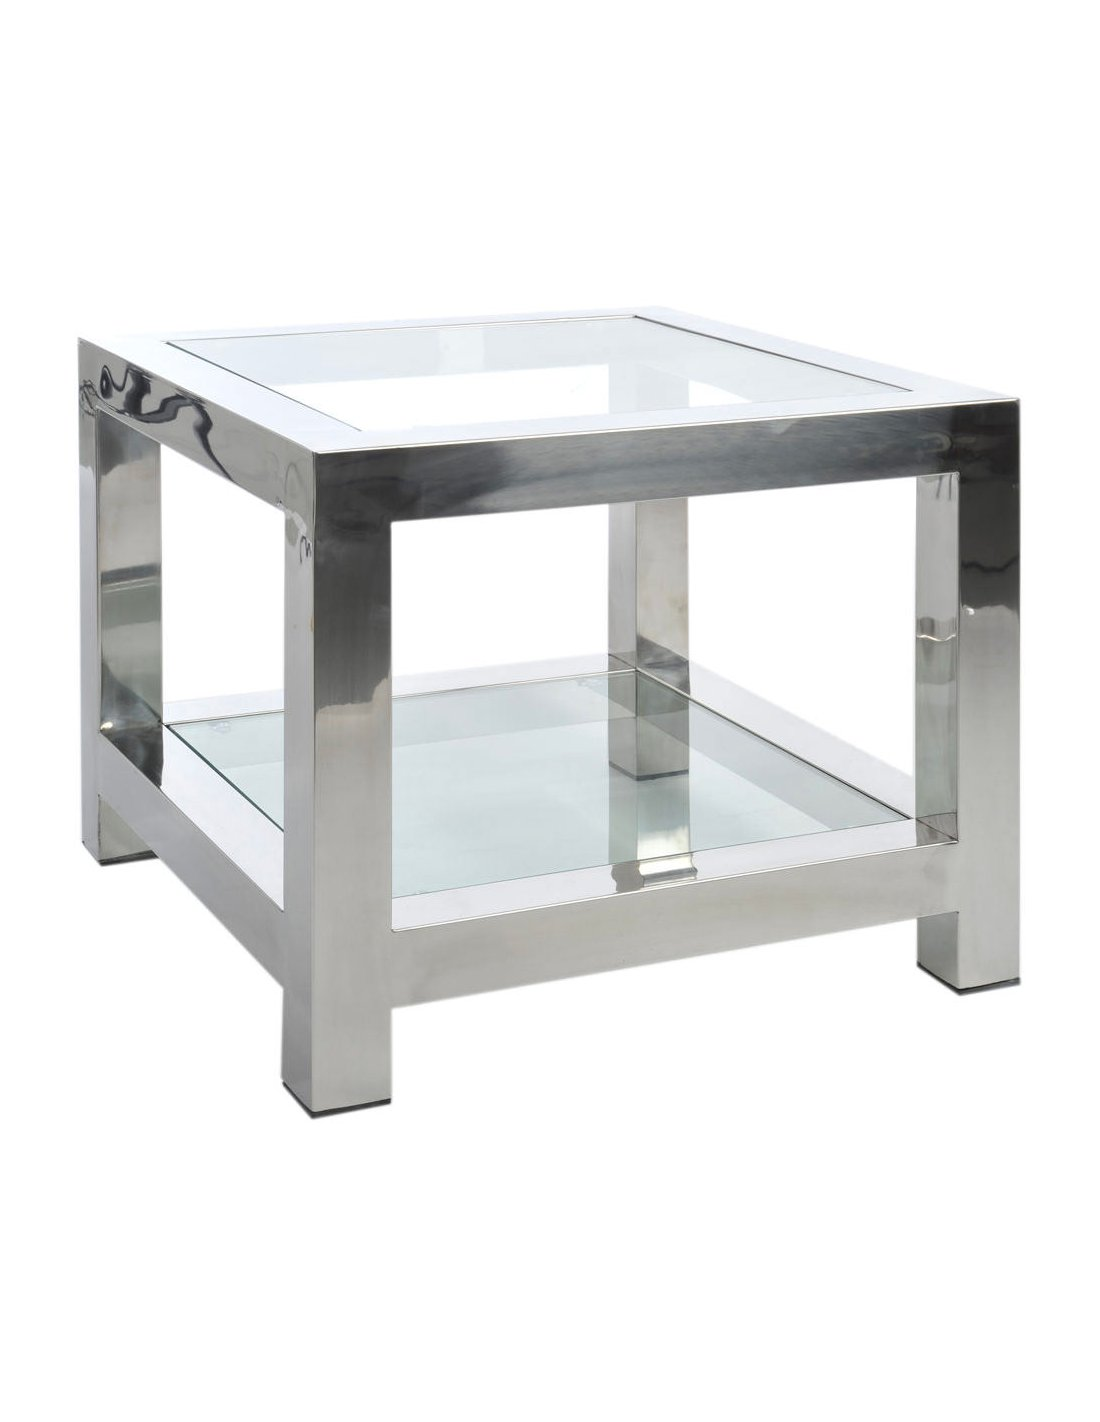 Tables Gigognes Verre Table Basse Acier Inoxydable Abington Creek J Line Argent